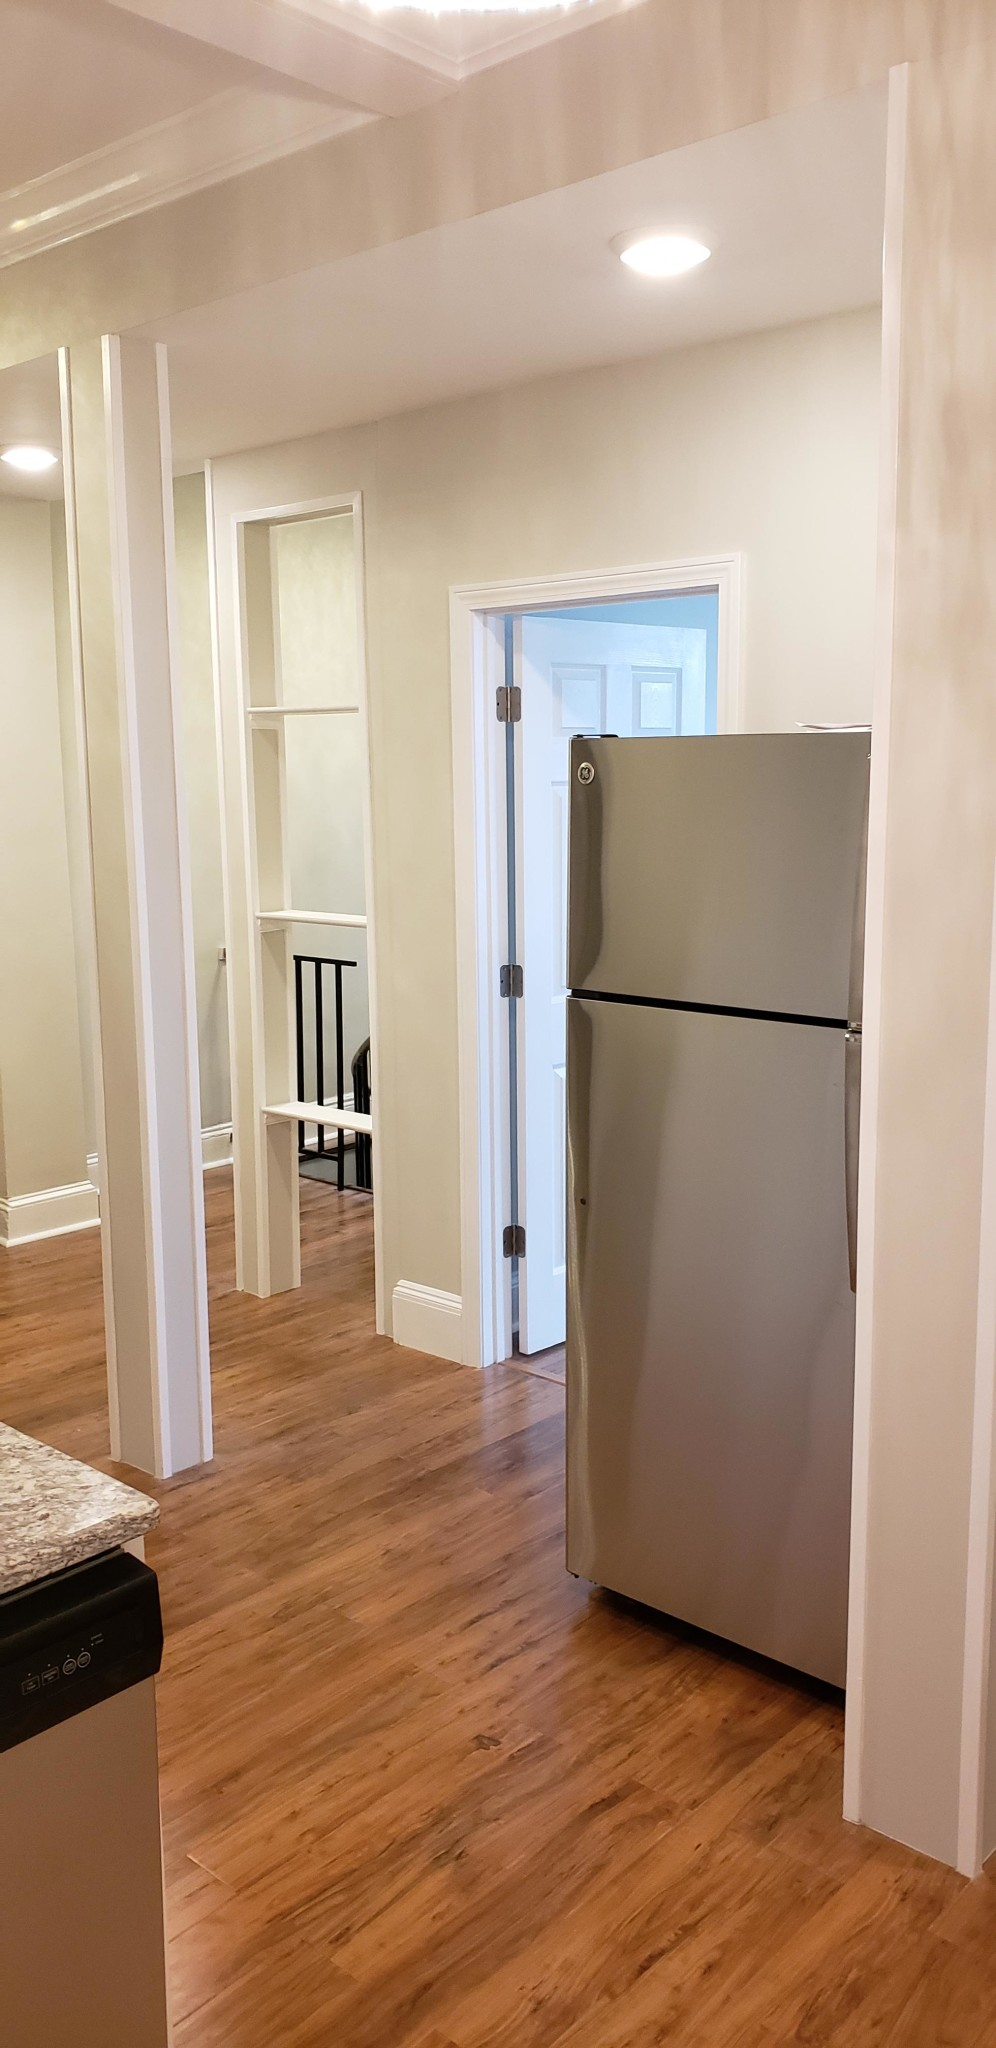 4 Beds, 2 Baths apartment in Boston, Allston for $4,200